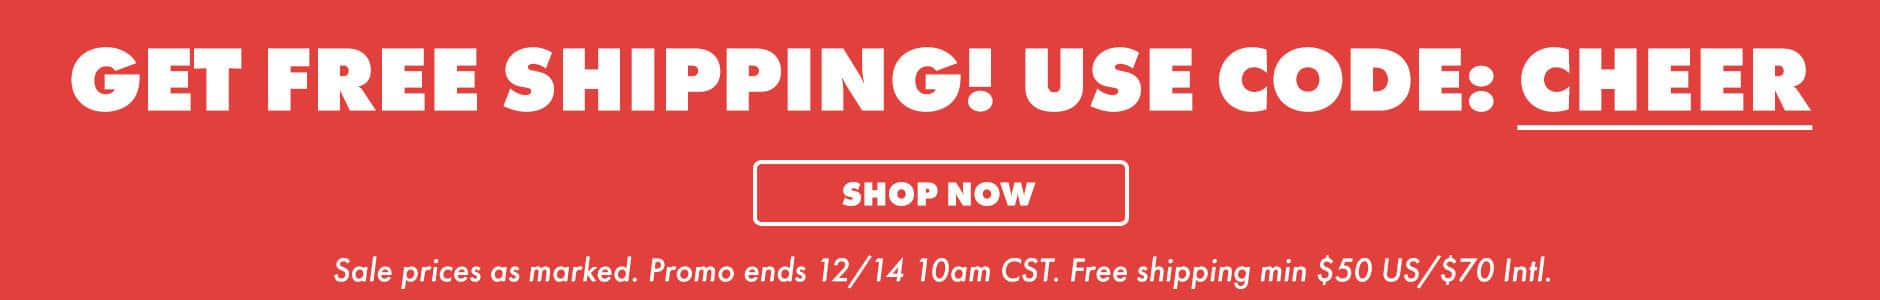 Get free shipping! Use code: CHEER. Shop now. Sale prices as marked. Promo ends 12/14 5PM CST. Free shipping min $50 US/$70 Intl.